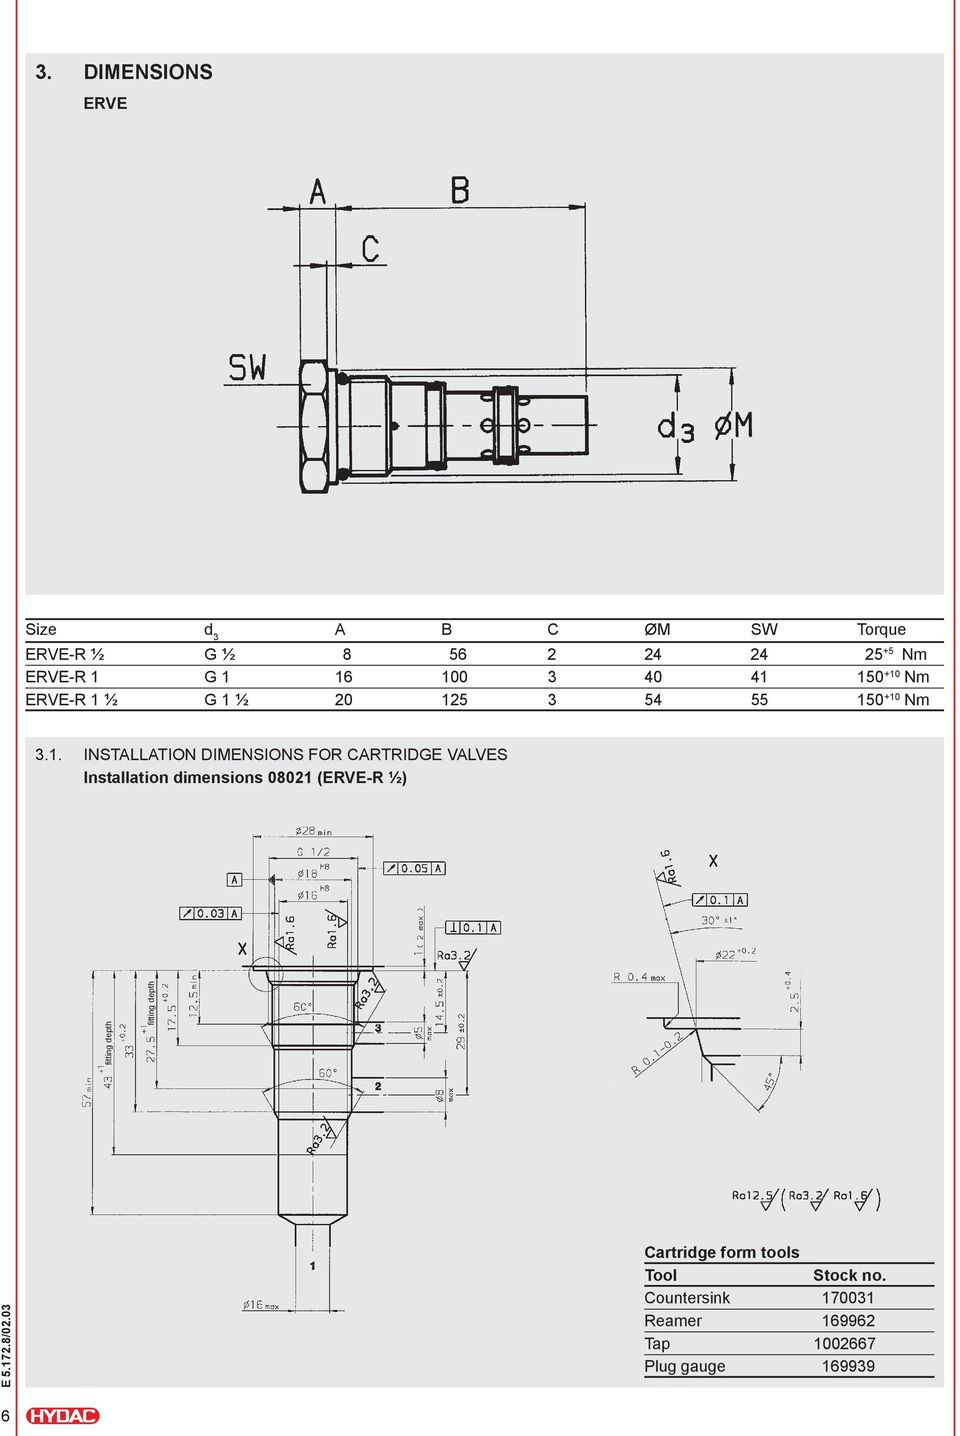 INSTALLATION DIMENSIONS FOR CARTRIDGE VALVES Installation dimensions 08021 (ERVE-R ½)